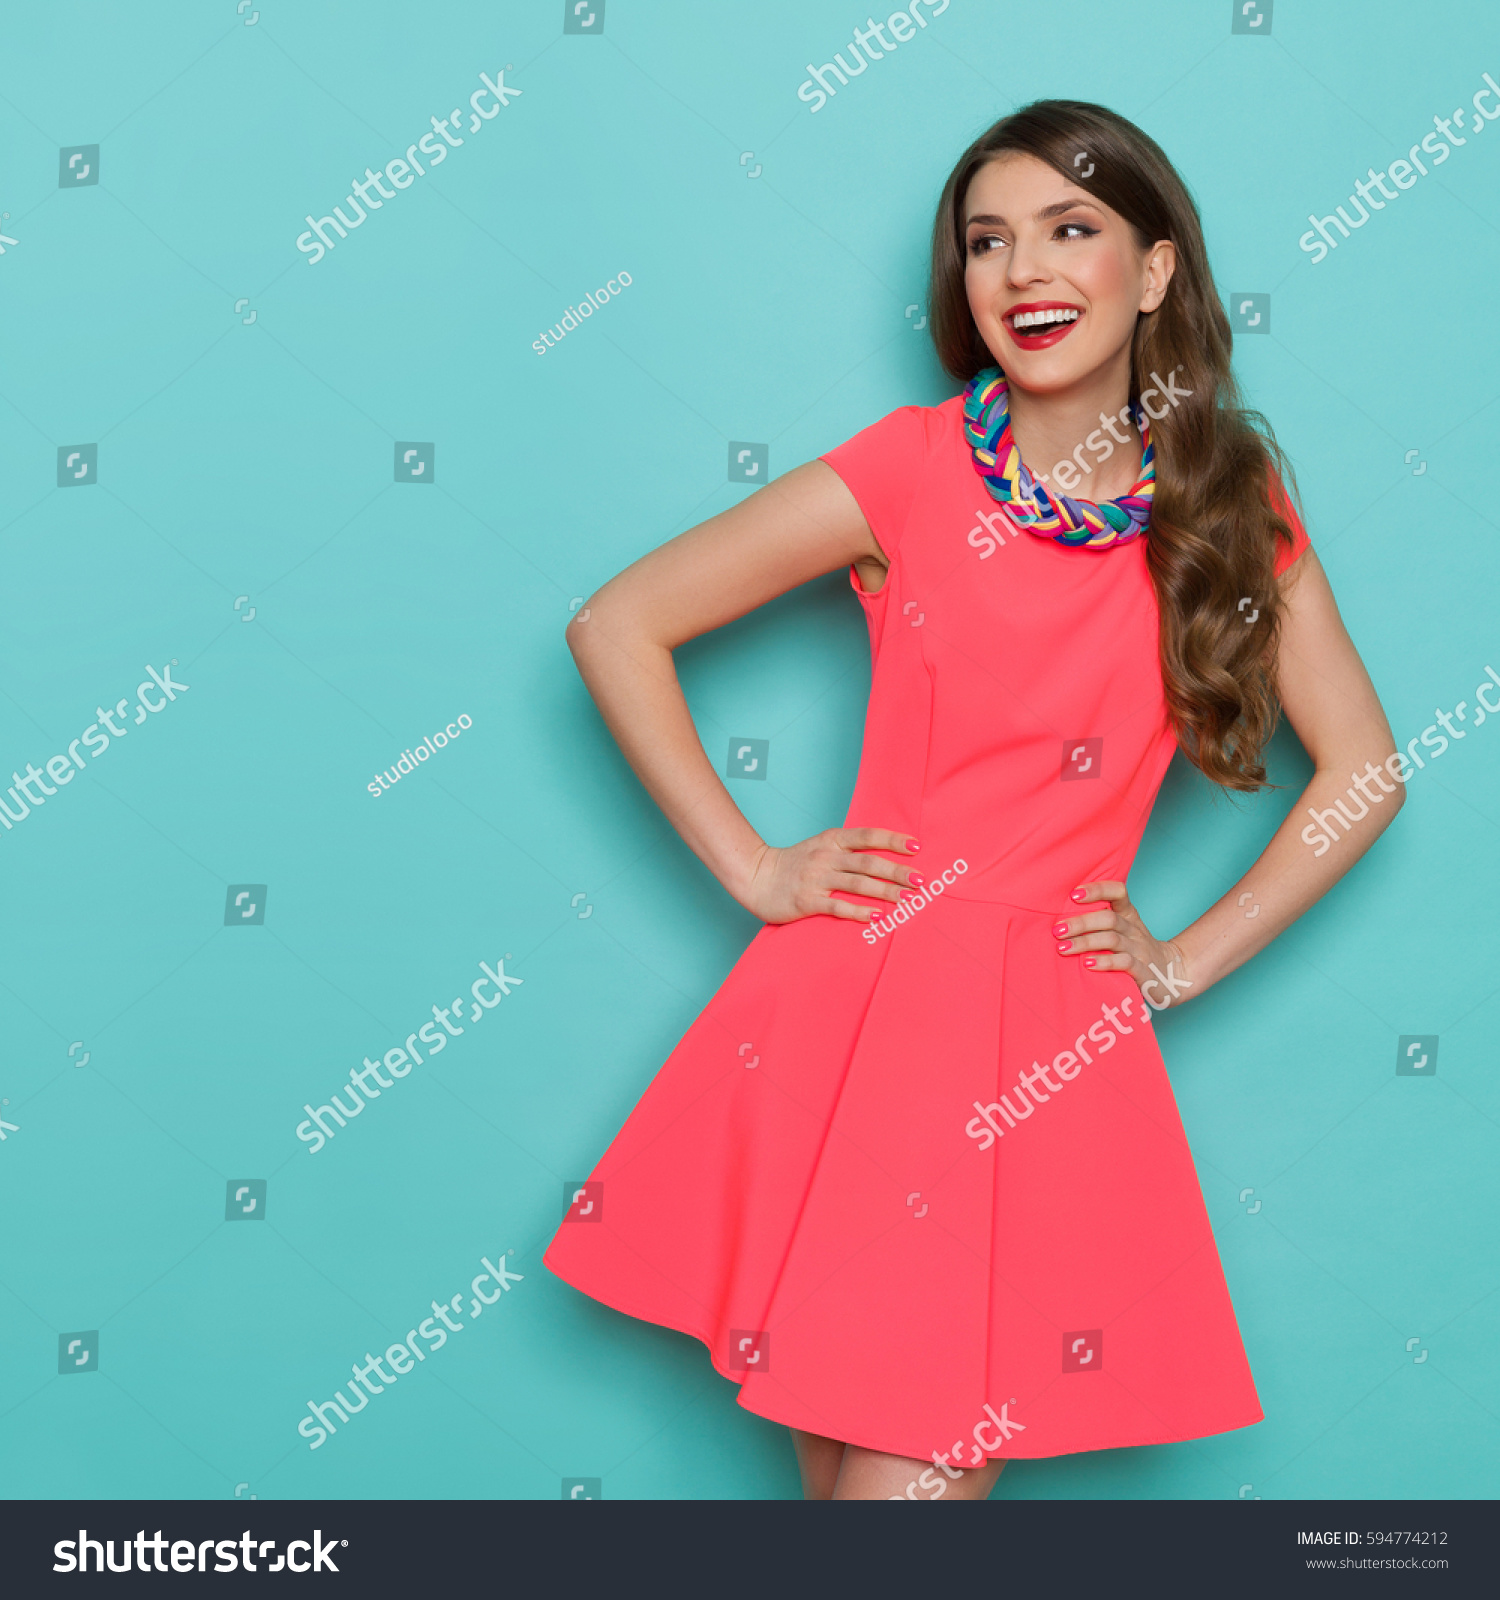 Amused beautiful young woman in pink mini dress posing with hand on hip and looking away. Three quarter length studio shot on turquoise background. #594774212